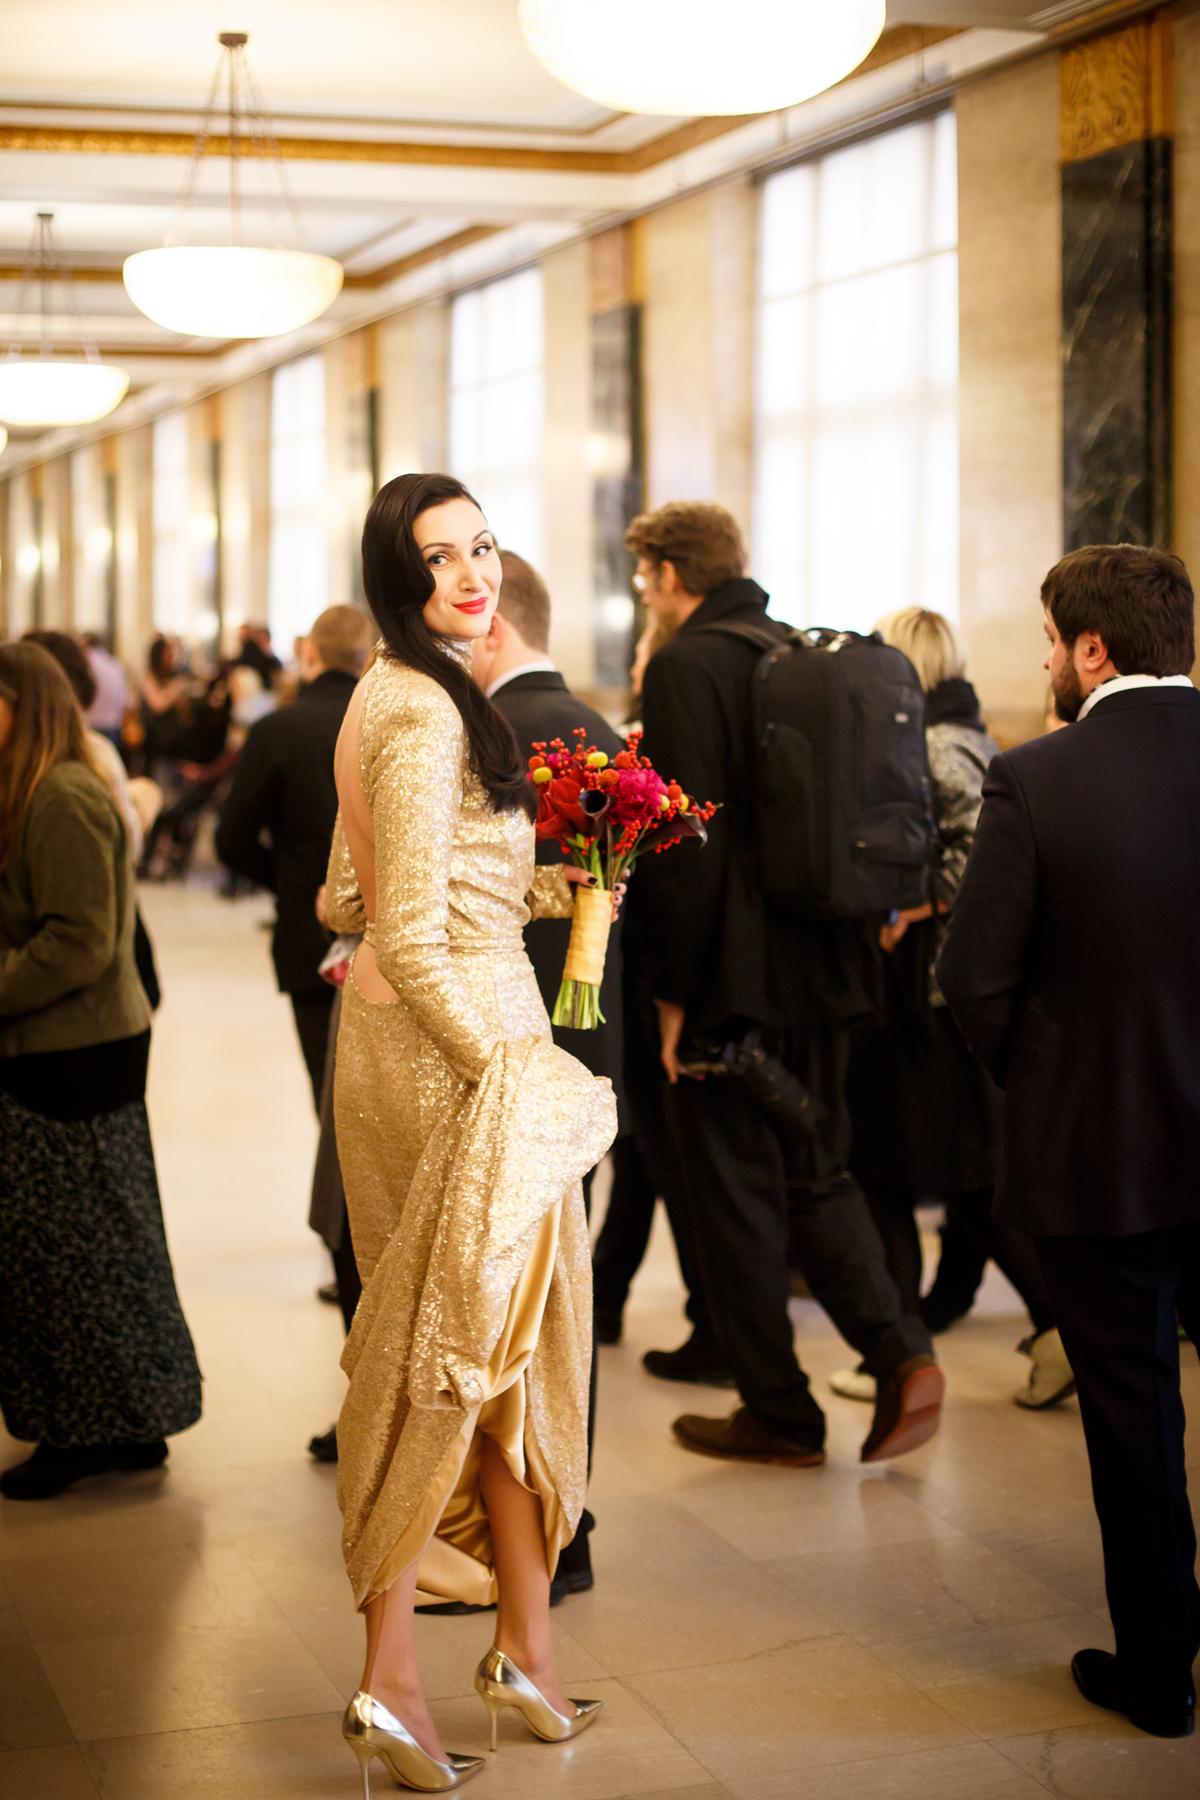 city hall wedding bride in golden dress with red bouquet